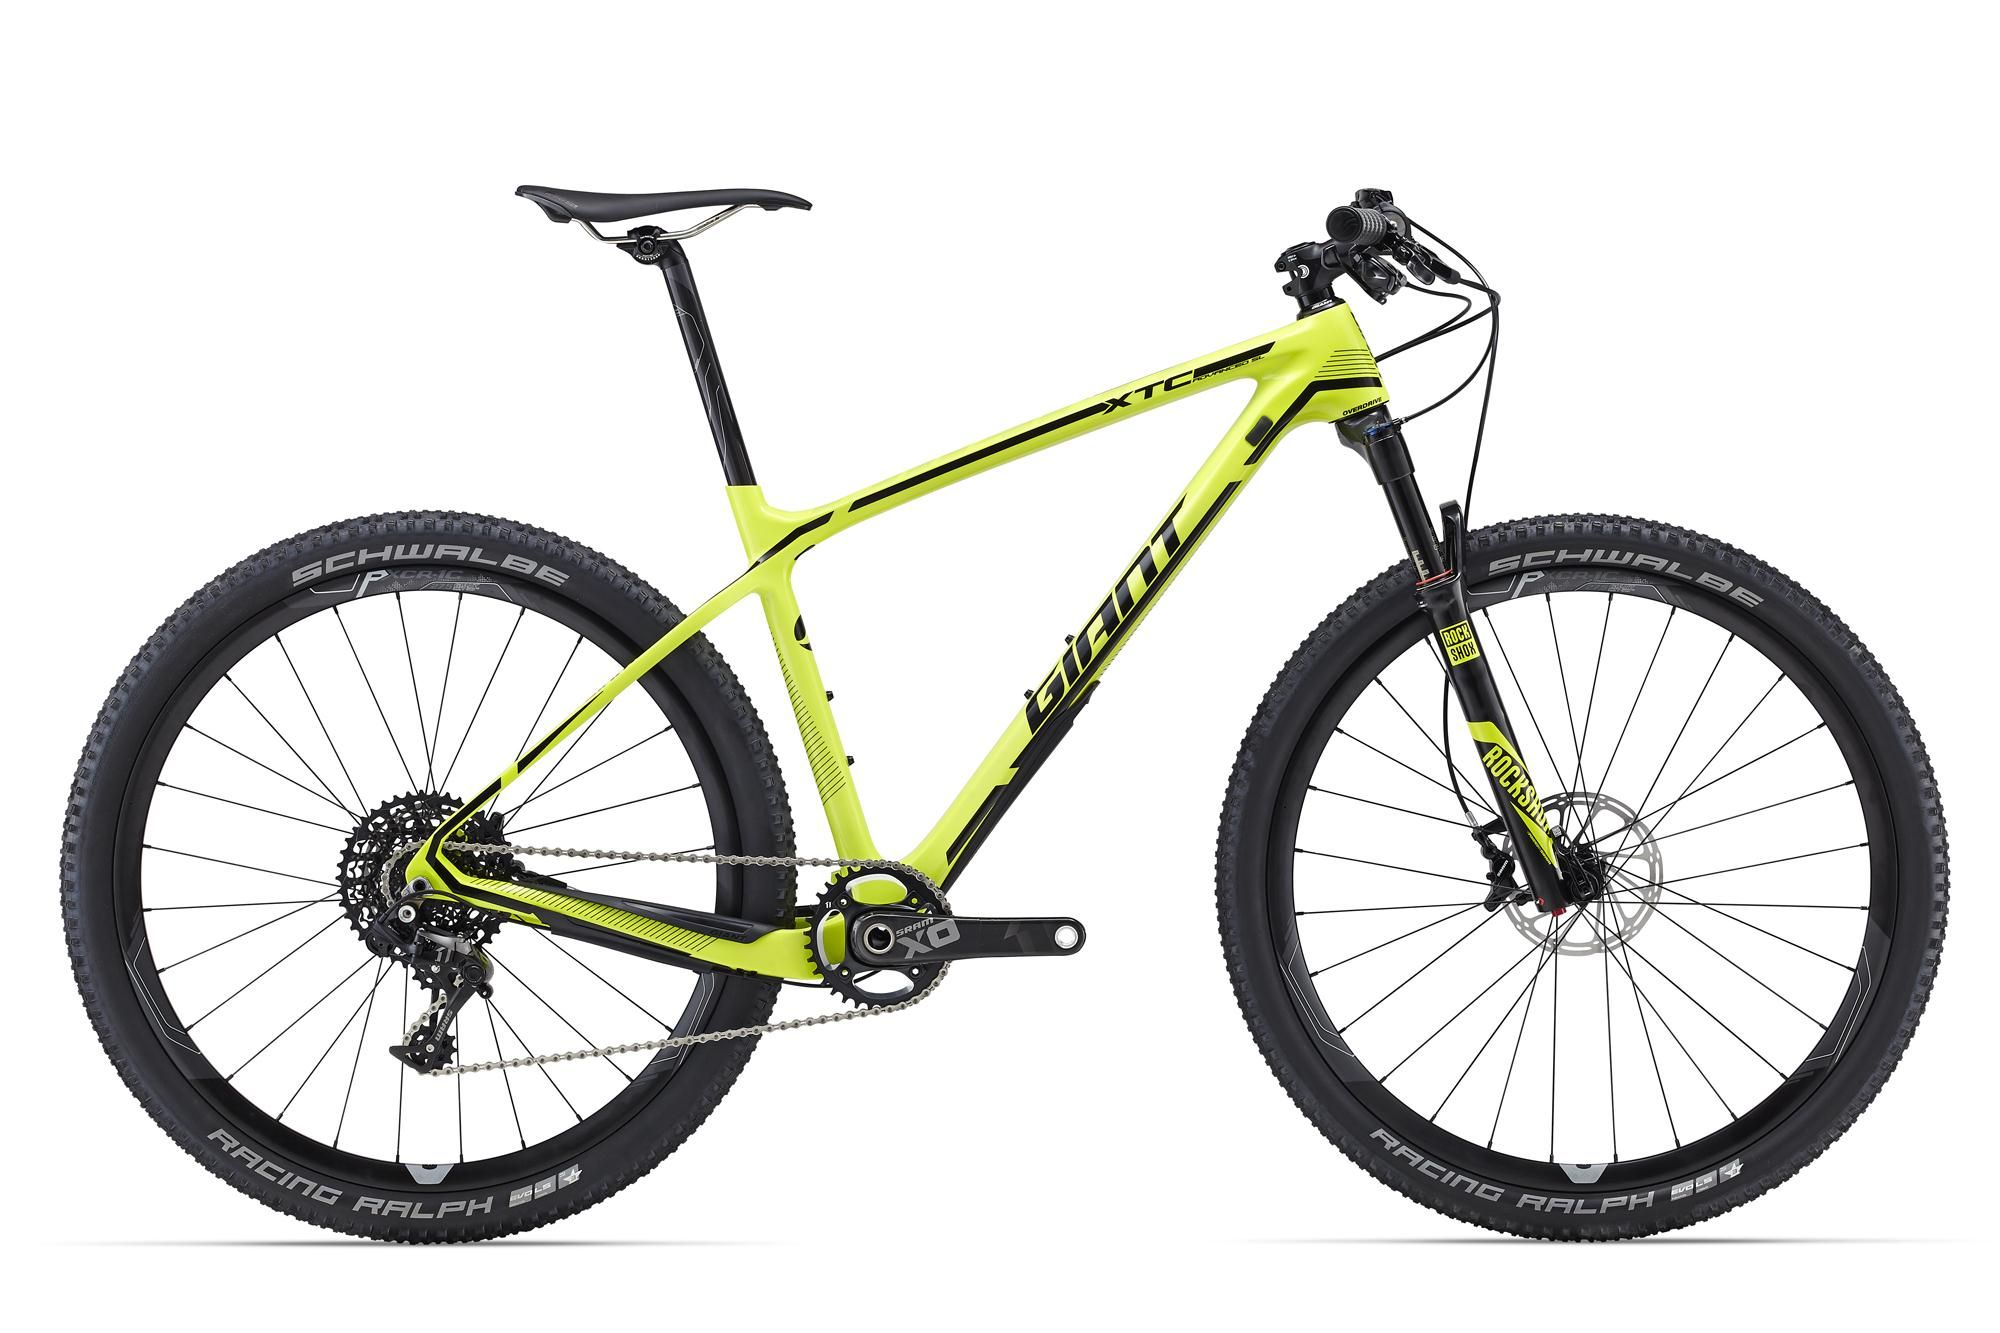 Велосипед Giant XtC Advanced SL 27.5 1 2016 велосипед giant trinity advanced pro 1 2016 page 8